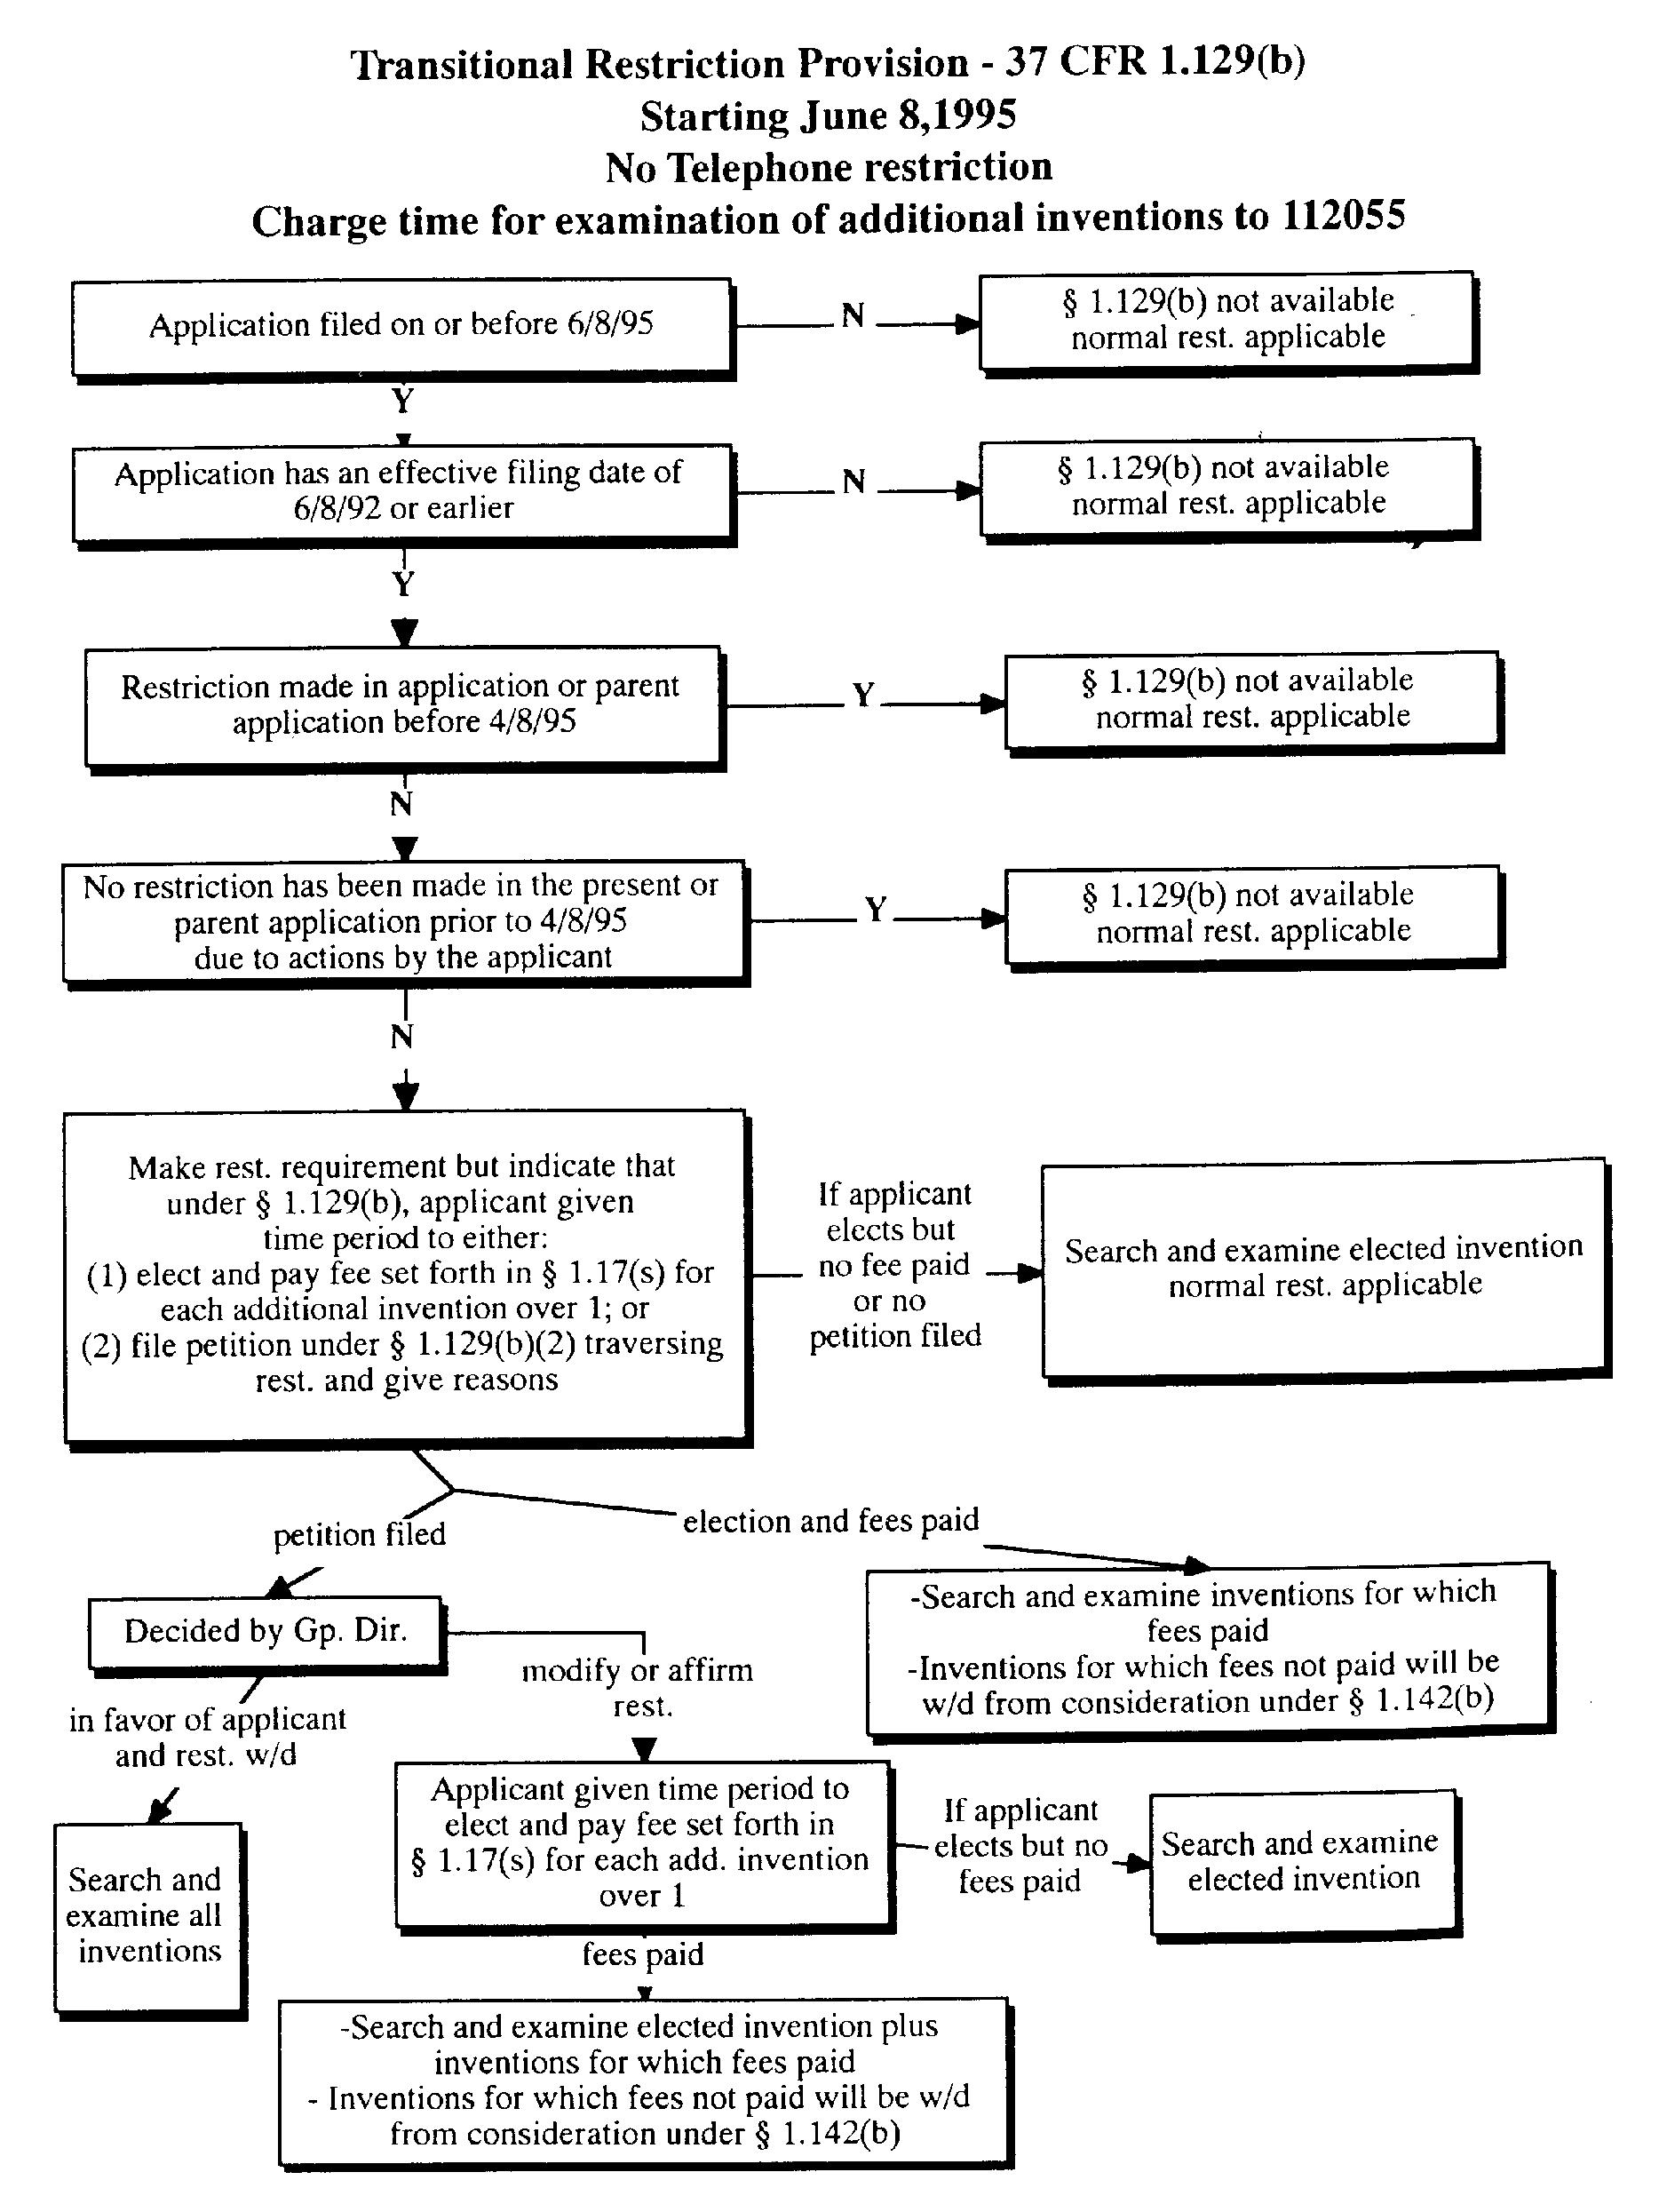 803 restriction when proper flowchart showing transitional restriction practice under 37 cfr 1129b falaconquin